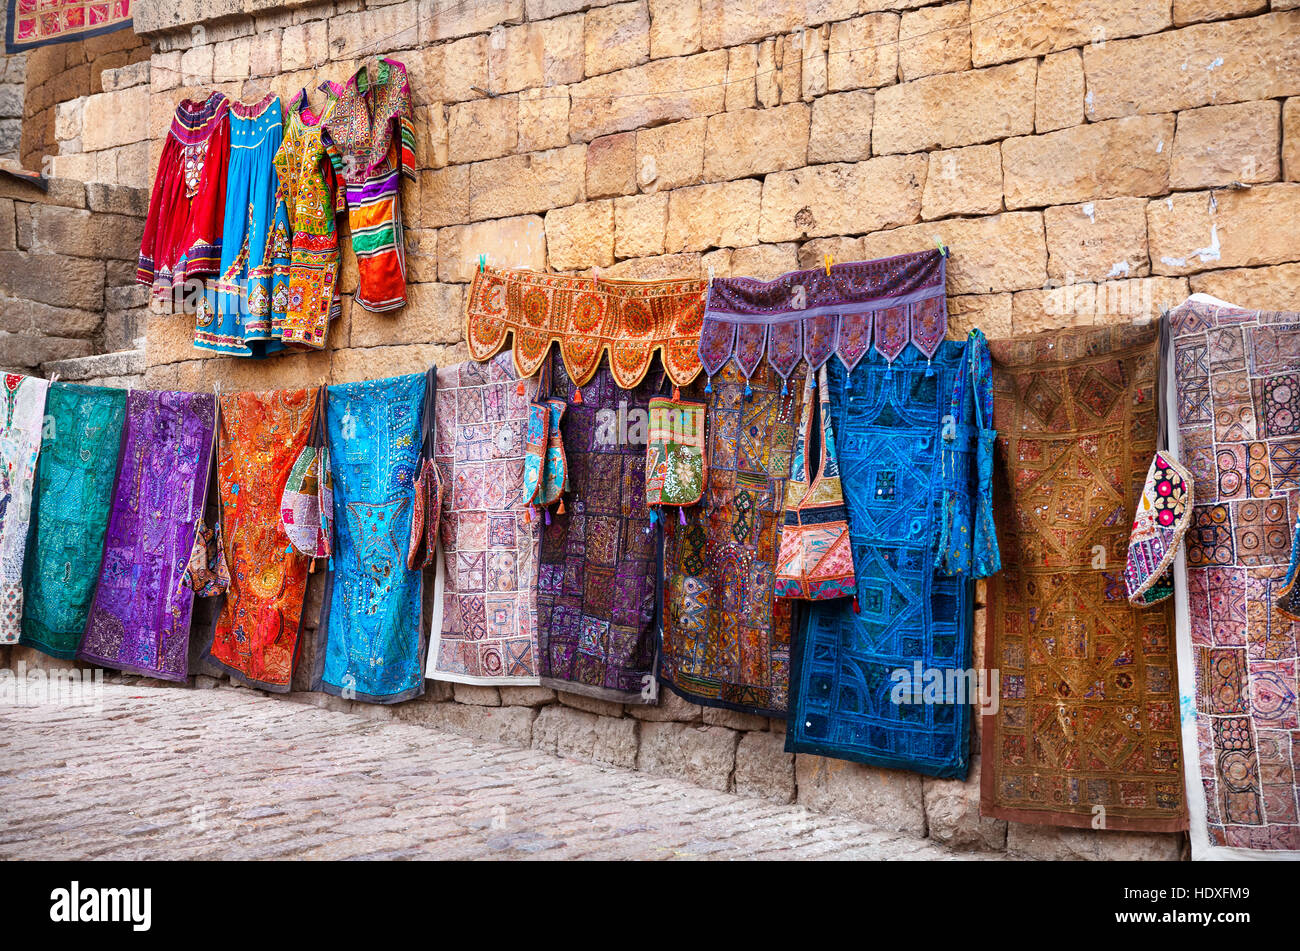 City street market with traditional clothes on the wall of Jaisalmer fort in Rajasthan, India Stock Photo